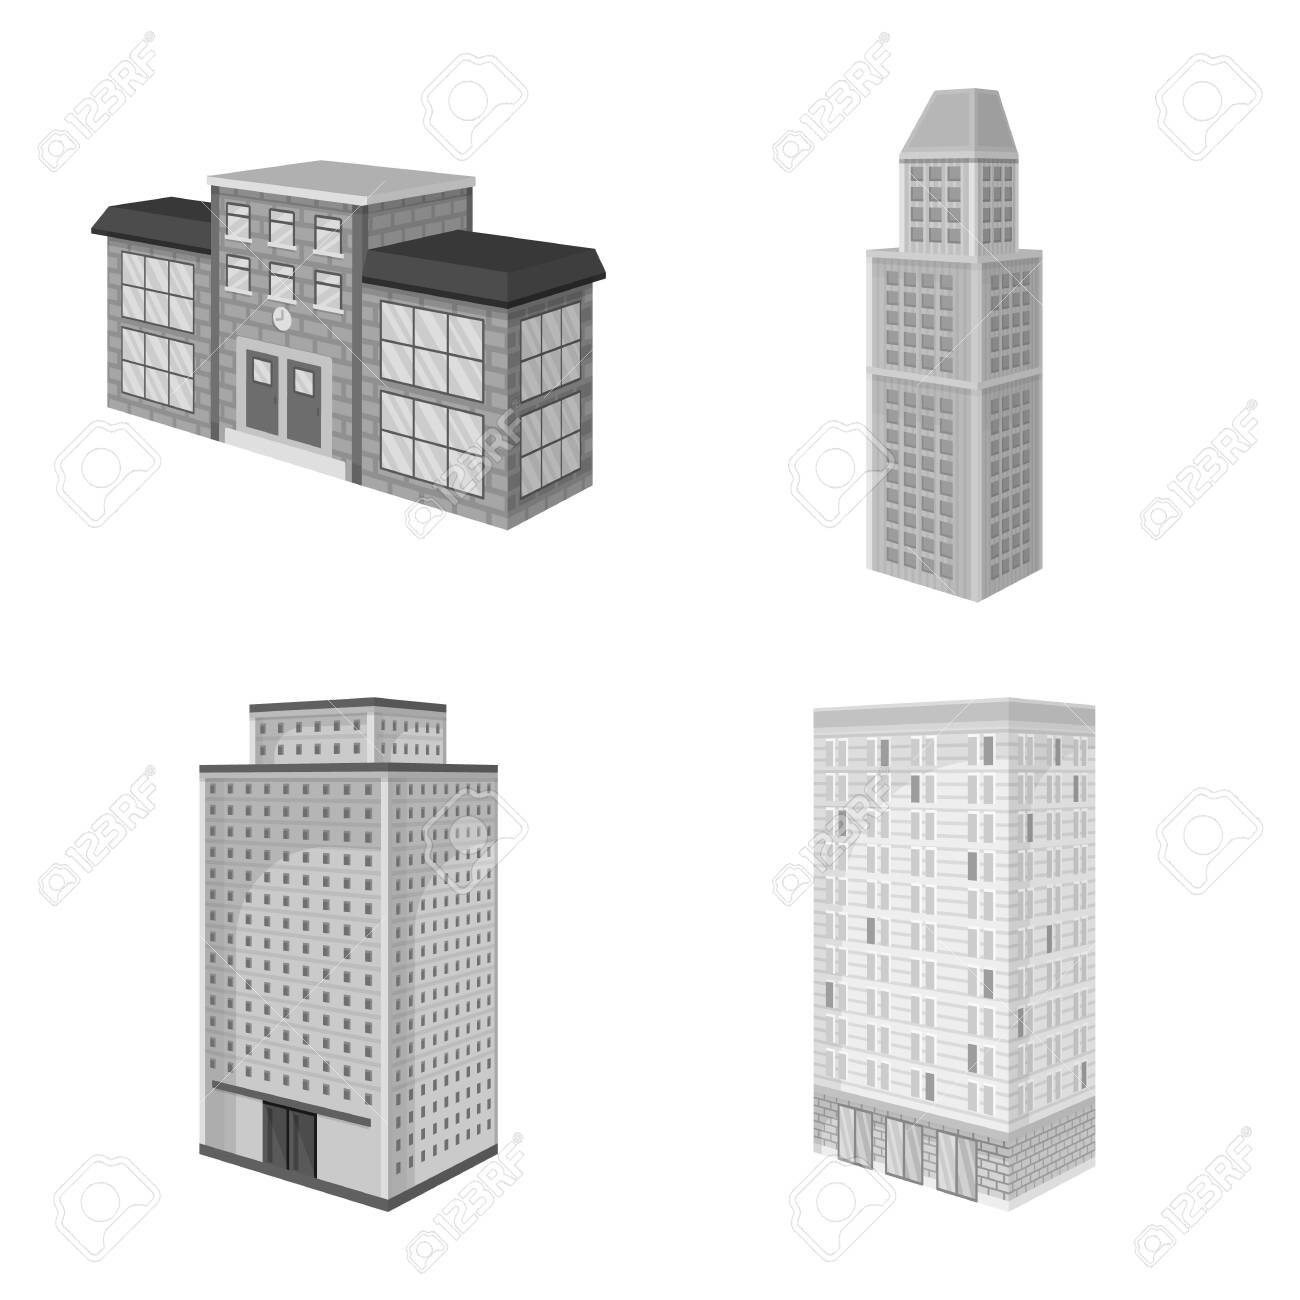 Vector illustration of realty and modern . Set of realty and building stock vector illustration. - 143495928